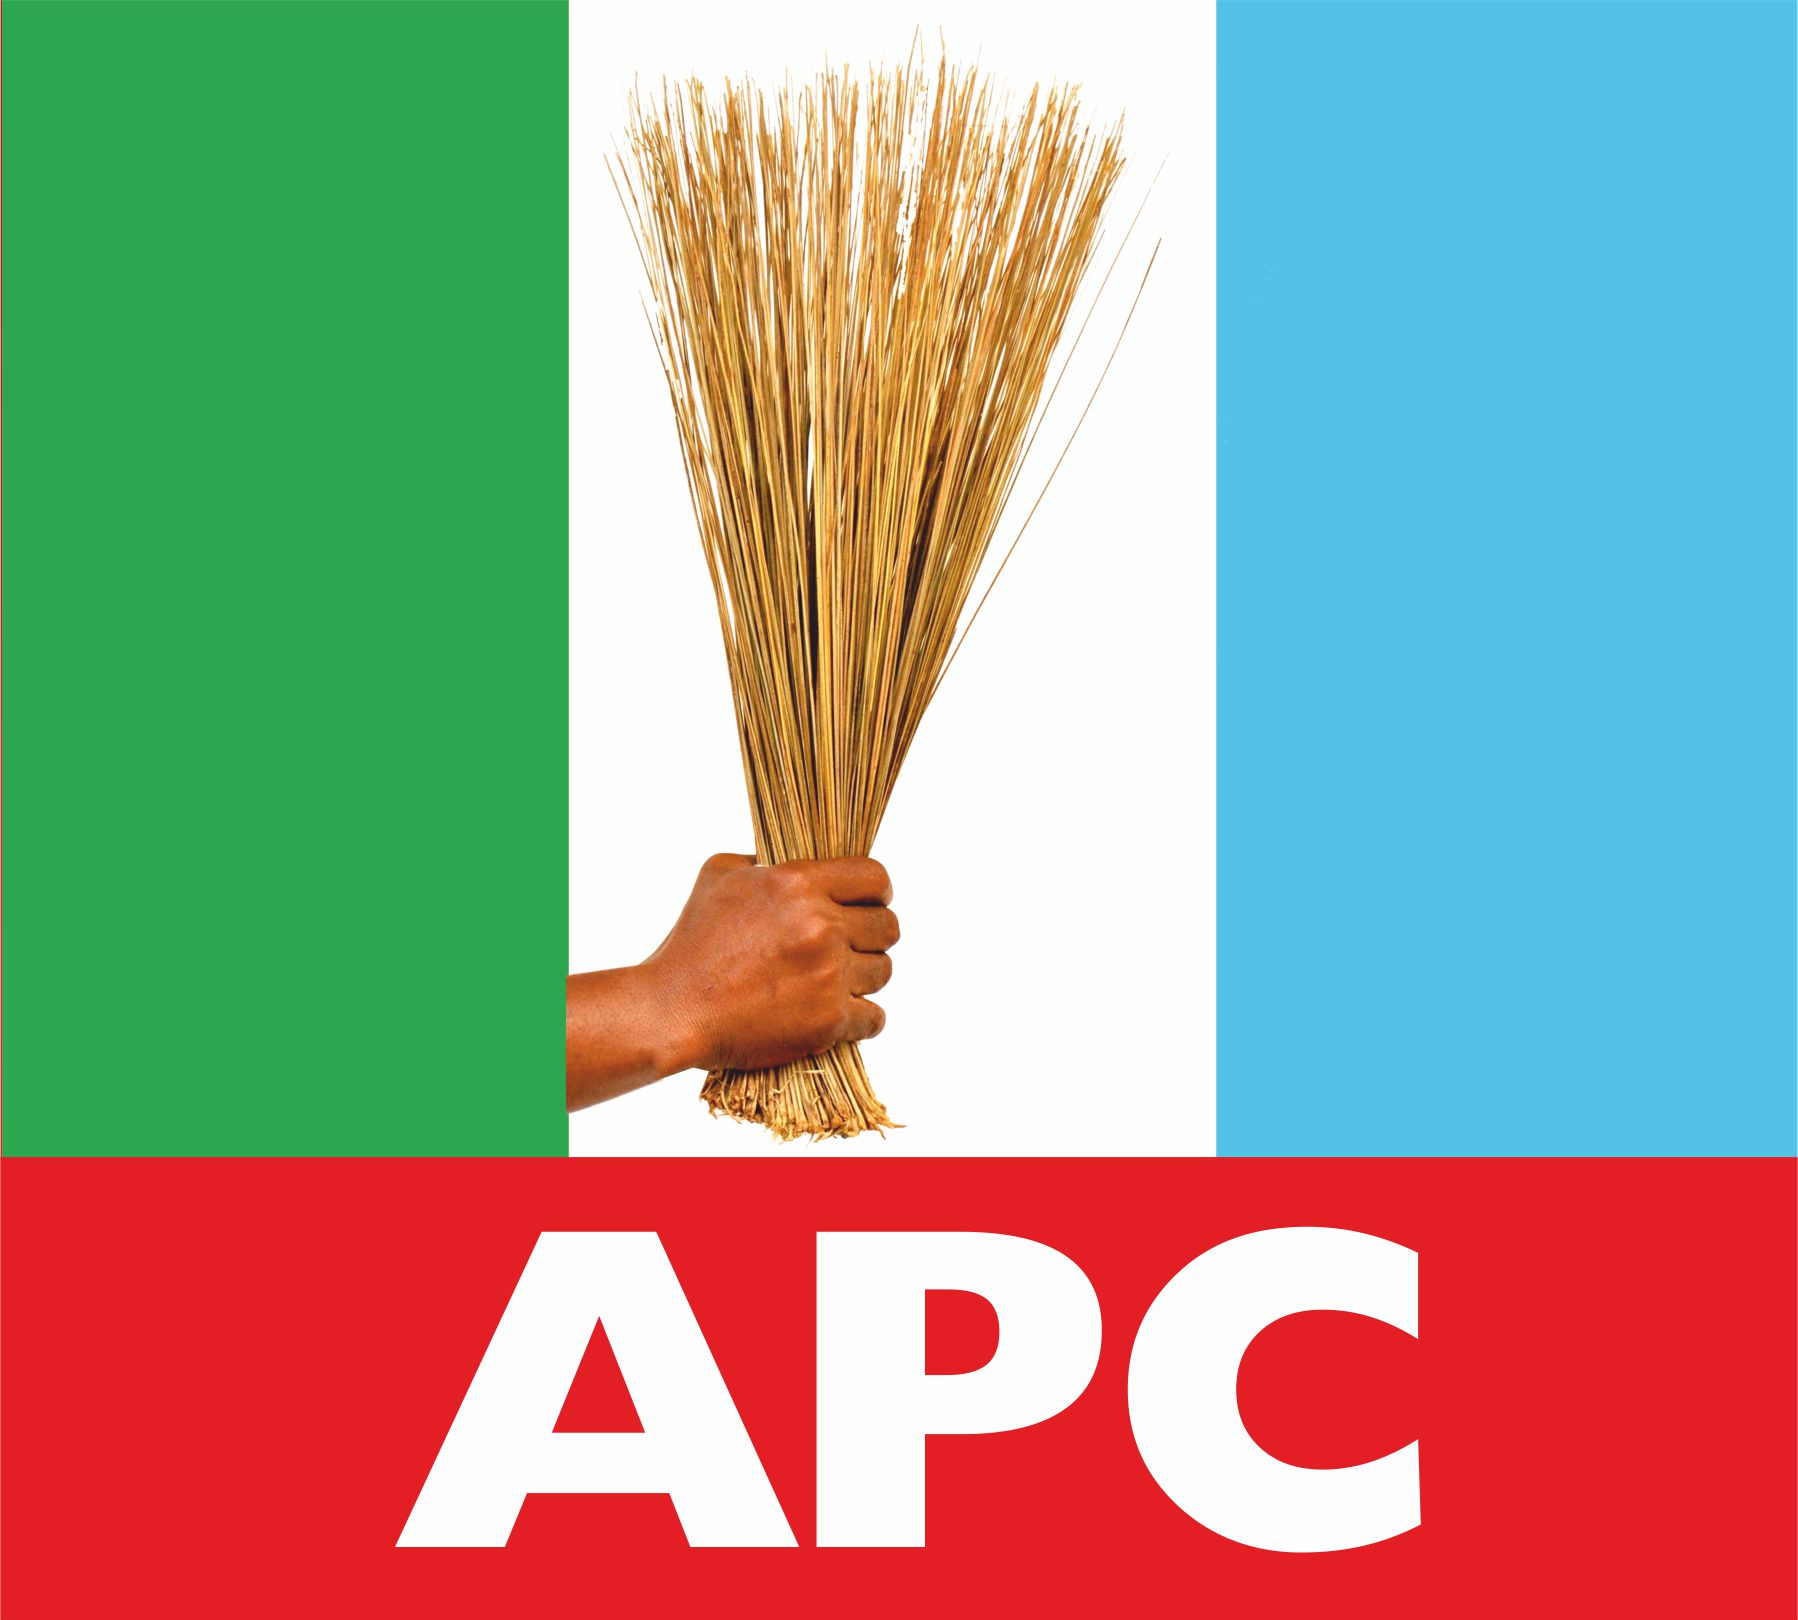 Transcript of the opening address by the National Chairman of the All Progressives Congress (APC), Chief John Odigie-Oyegun at the party's National Executive Committee (NEC) meeting  held at the APC National Secretariat in Abuja, March 24, 2016.